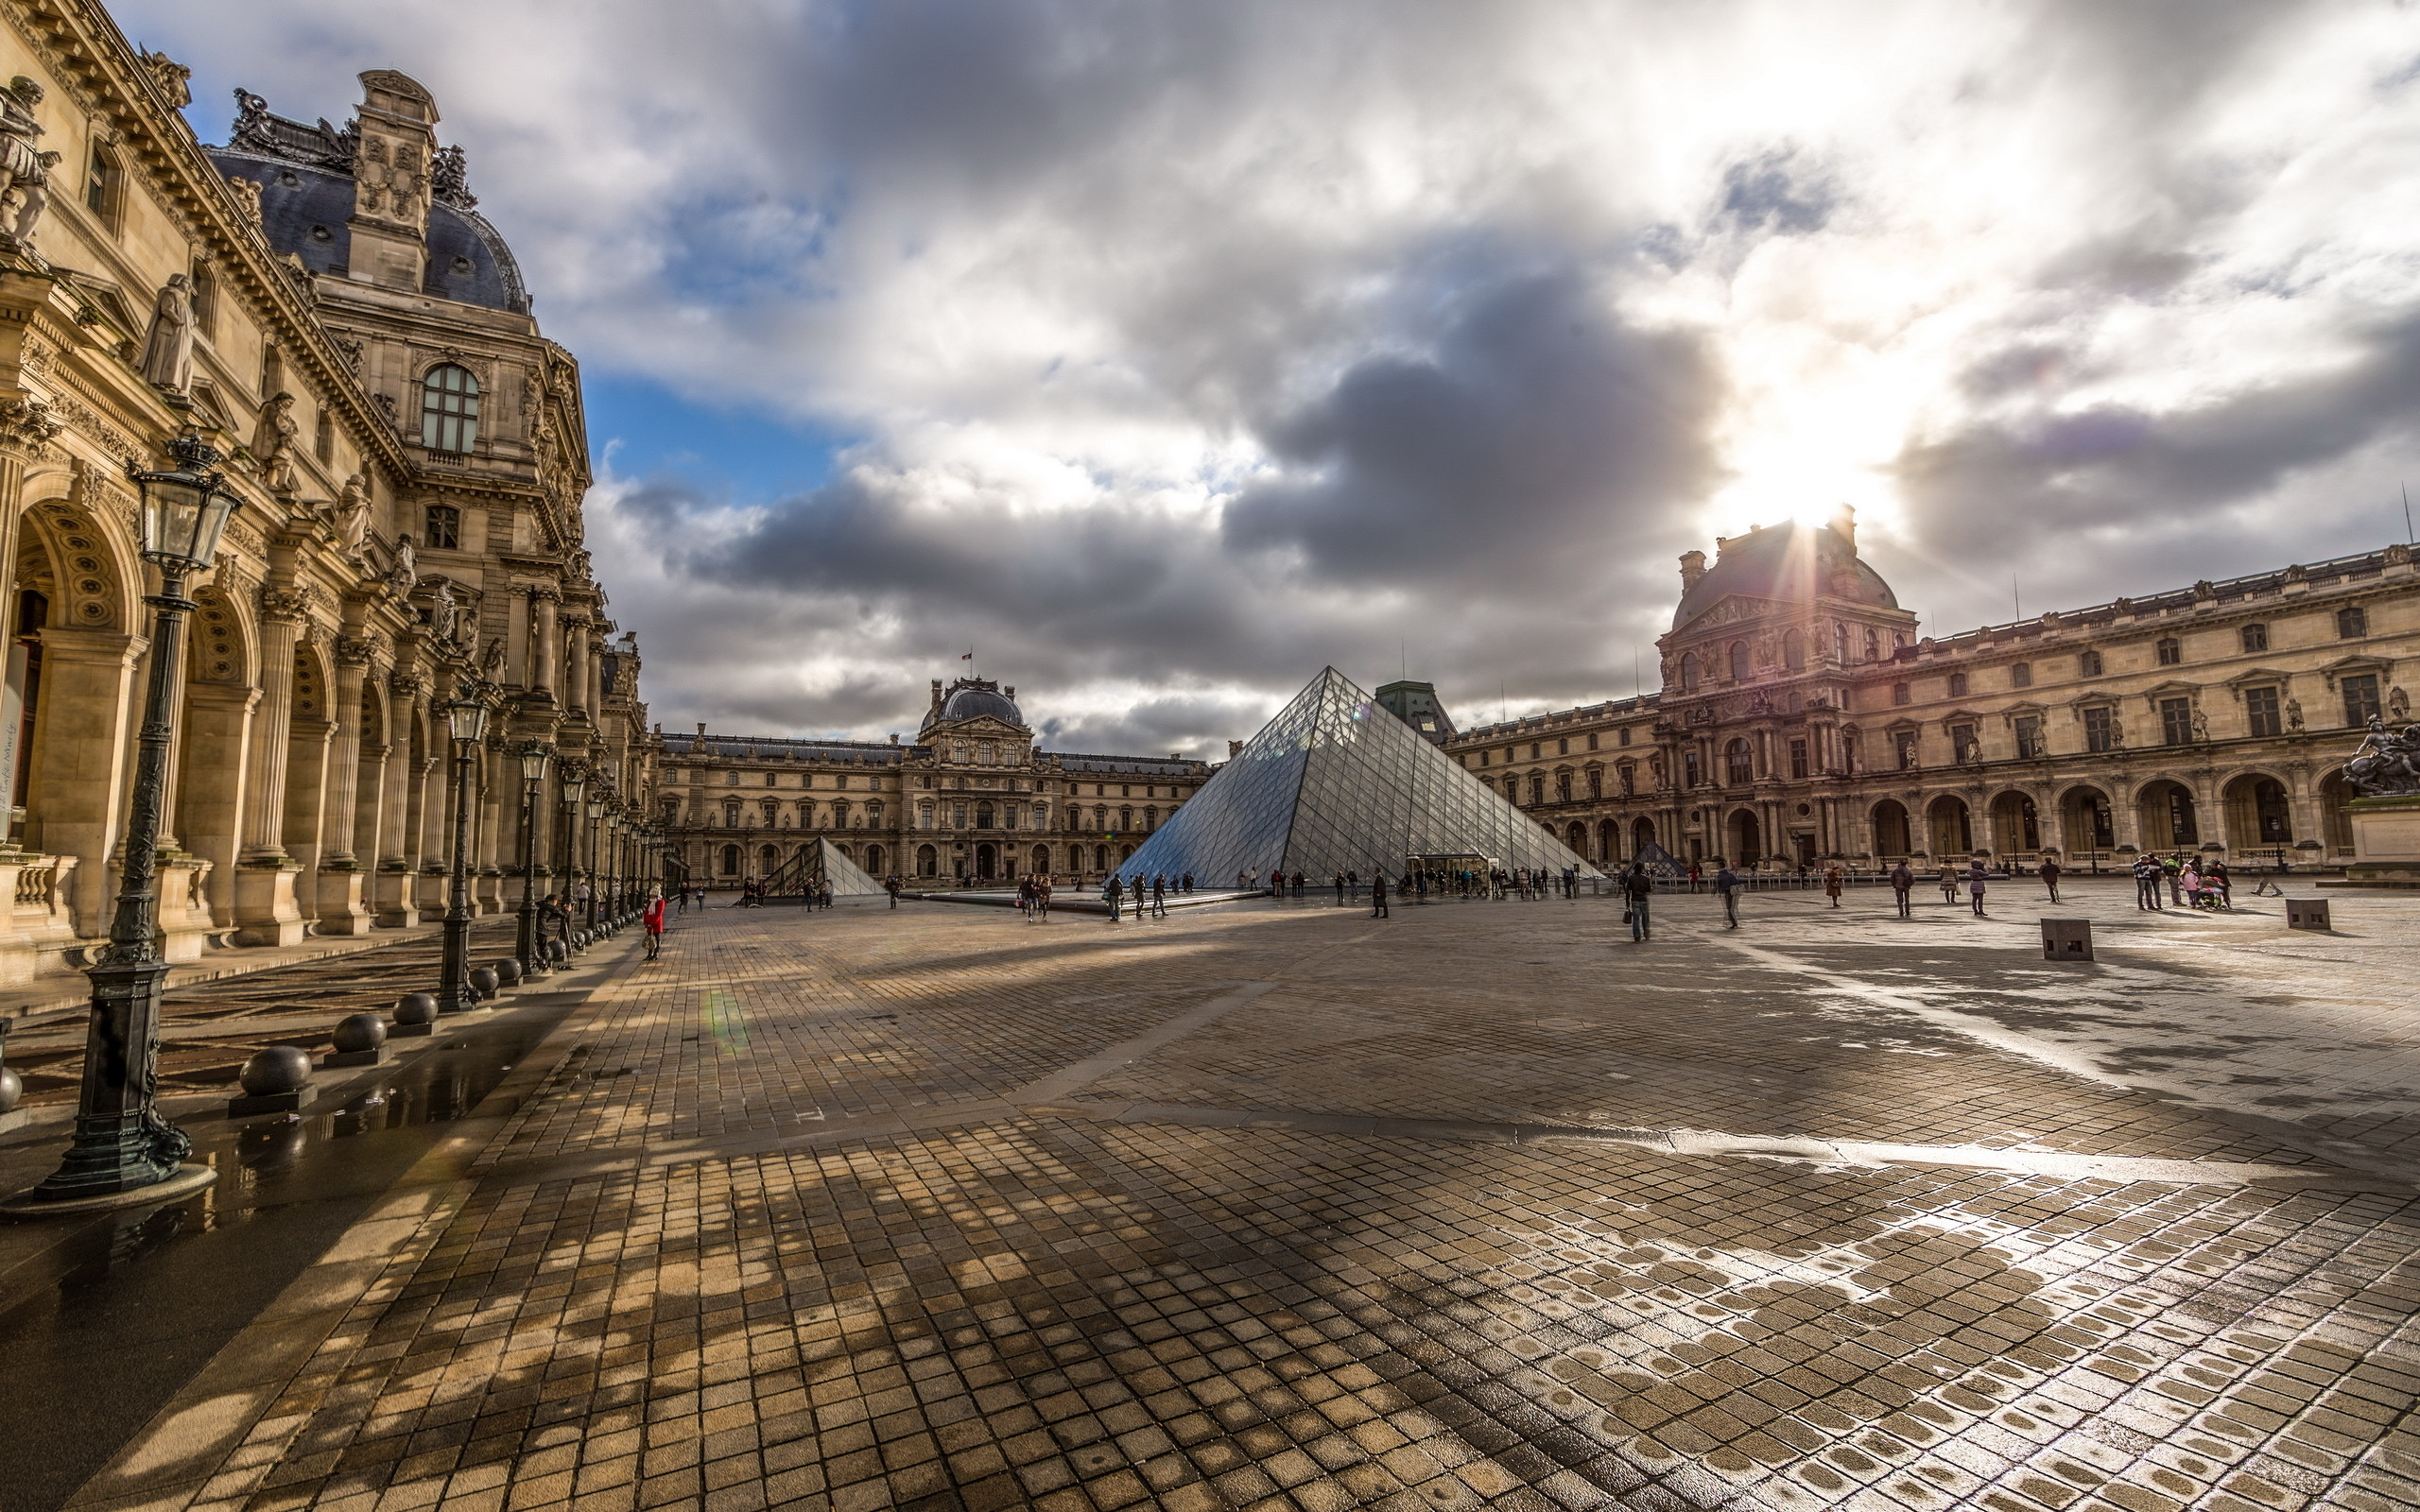 4k Hdr Wallpaper Iphone X The Louvre Full Hd Wallpaper And Background Image